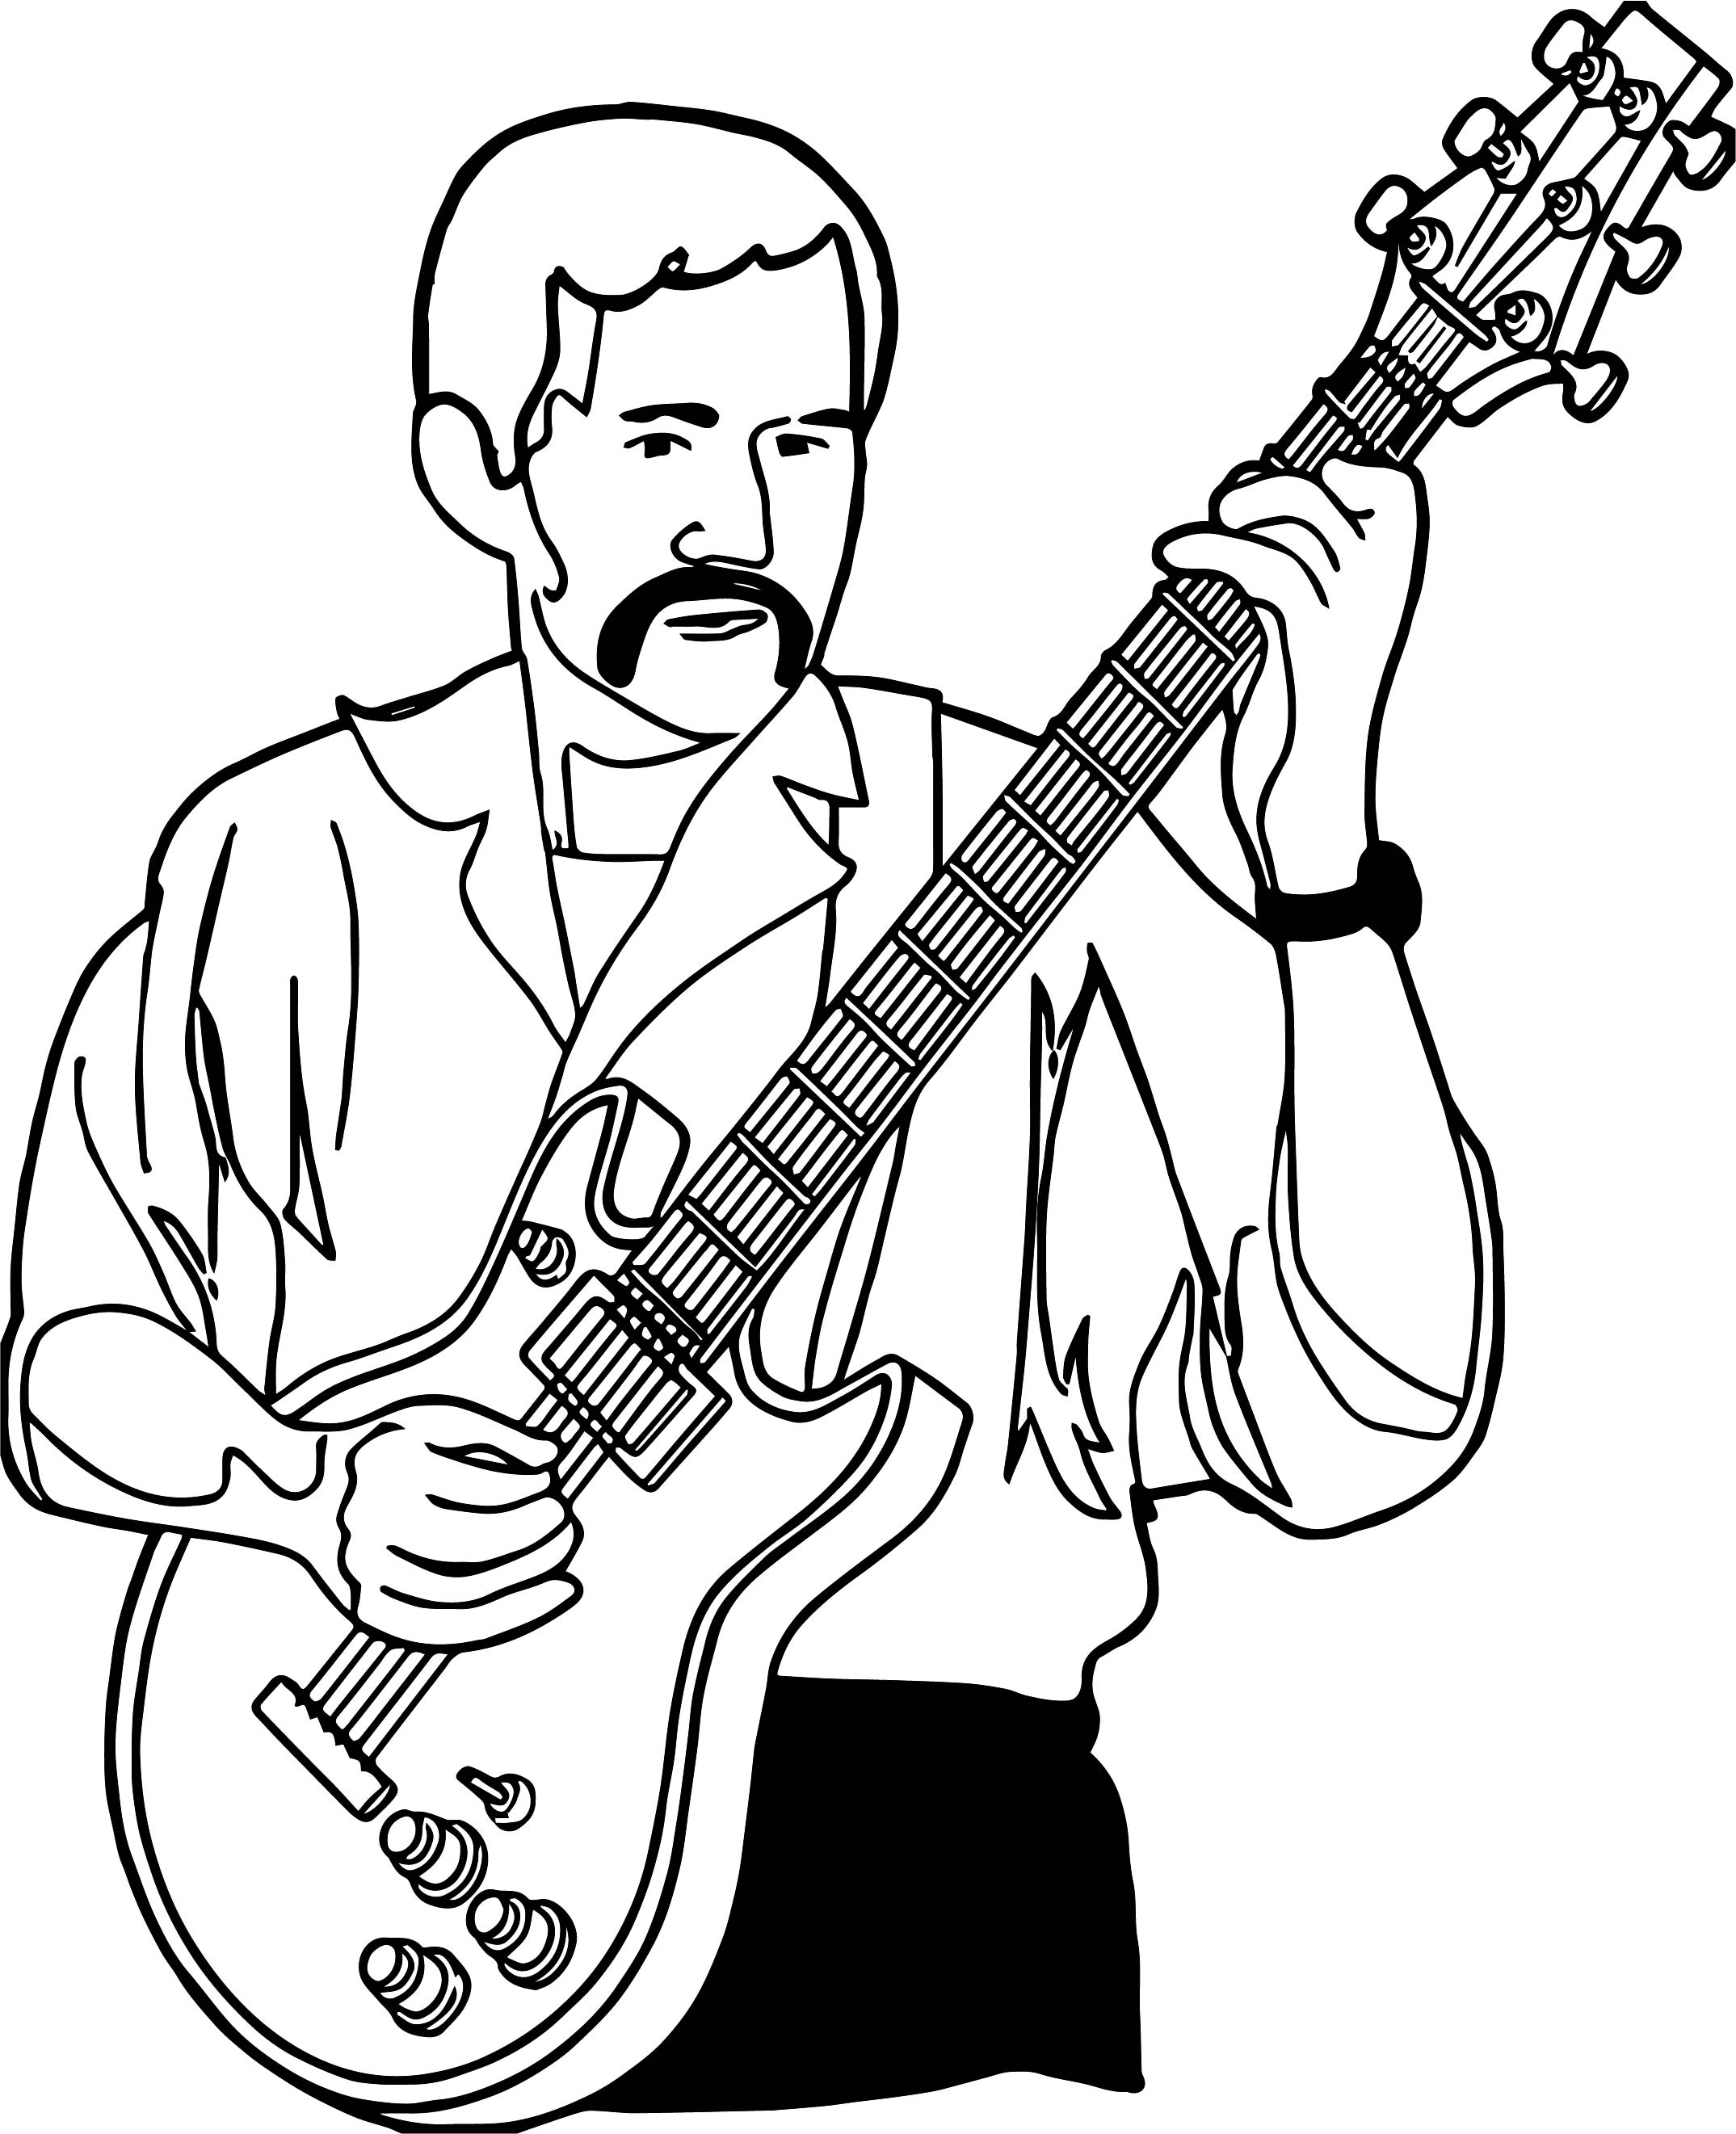 Playing Guitar Guitarist Playing The Guitar Coloring Page